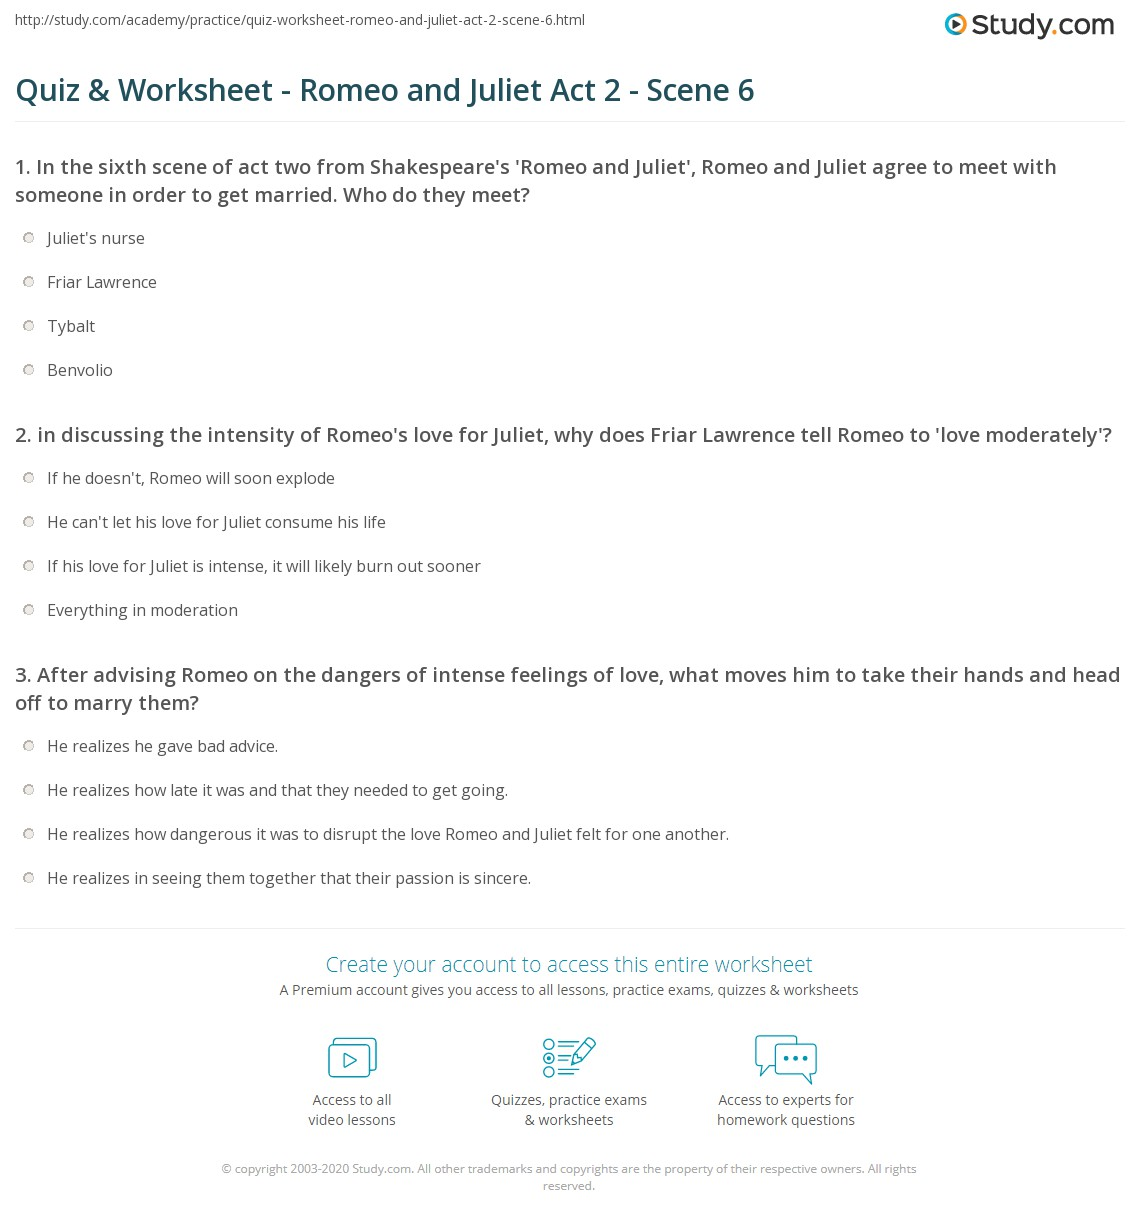 Quiz & Worksheet - Romeo and Juliet Act 2 - Scene 6 | Study com